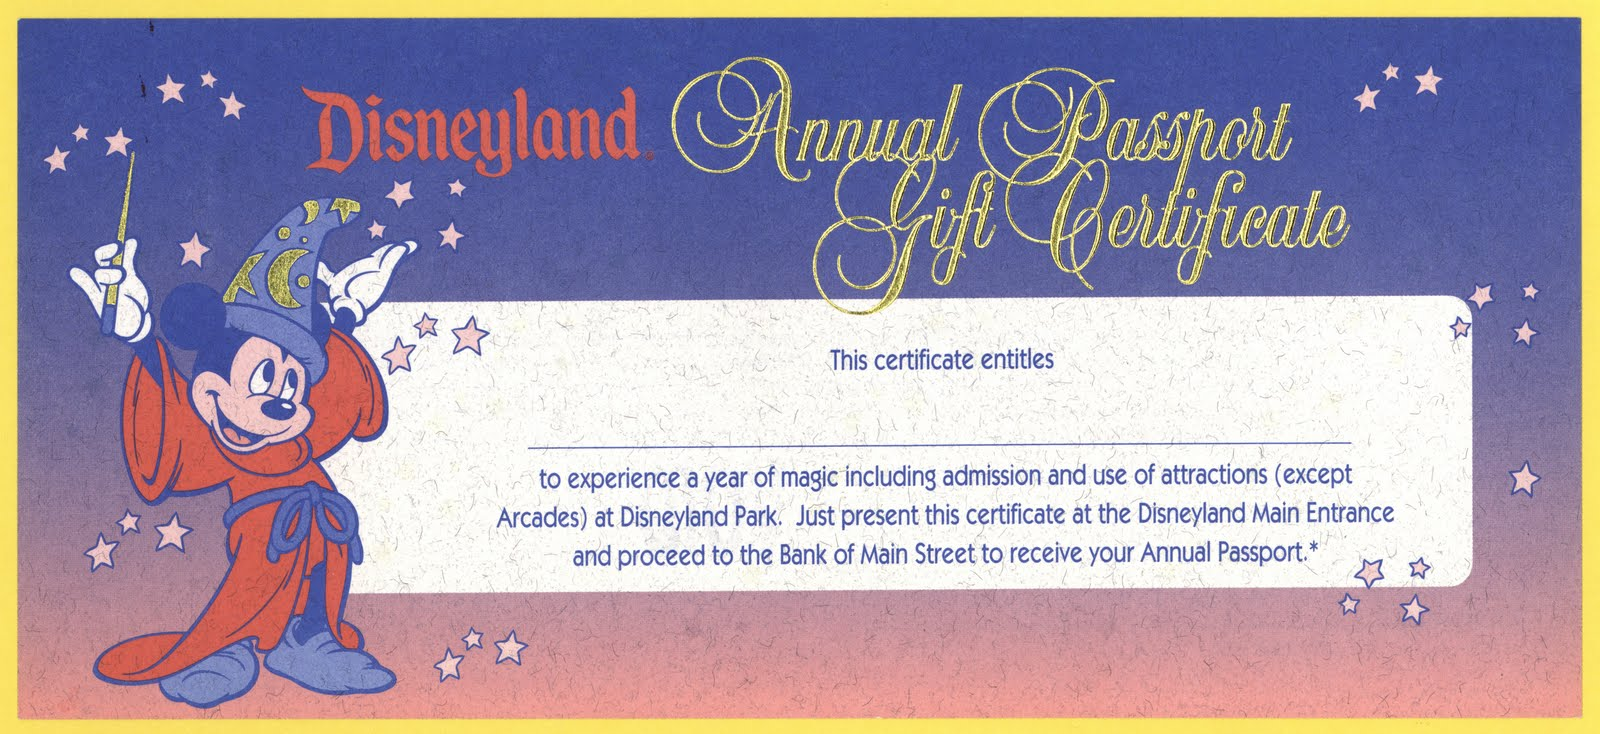 vintage disneyland tickets disneyland annual passport gift